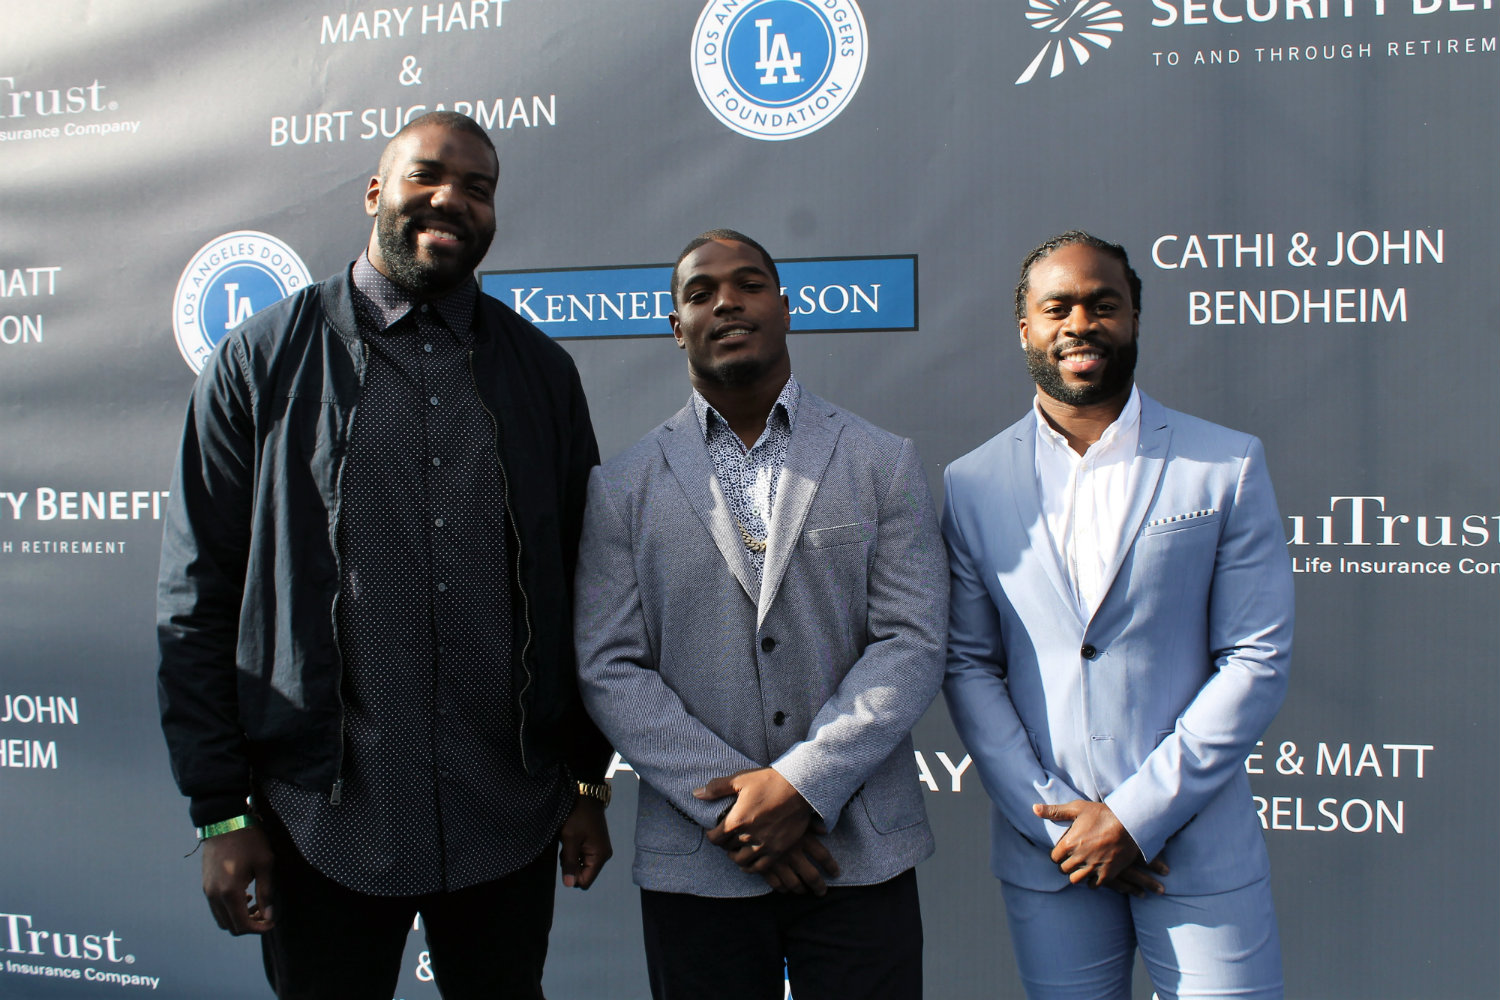 The Los Angeles Chargers were in the house. Photo by Dennis J. Freeman/News4usonline.com